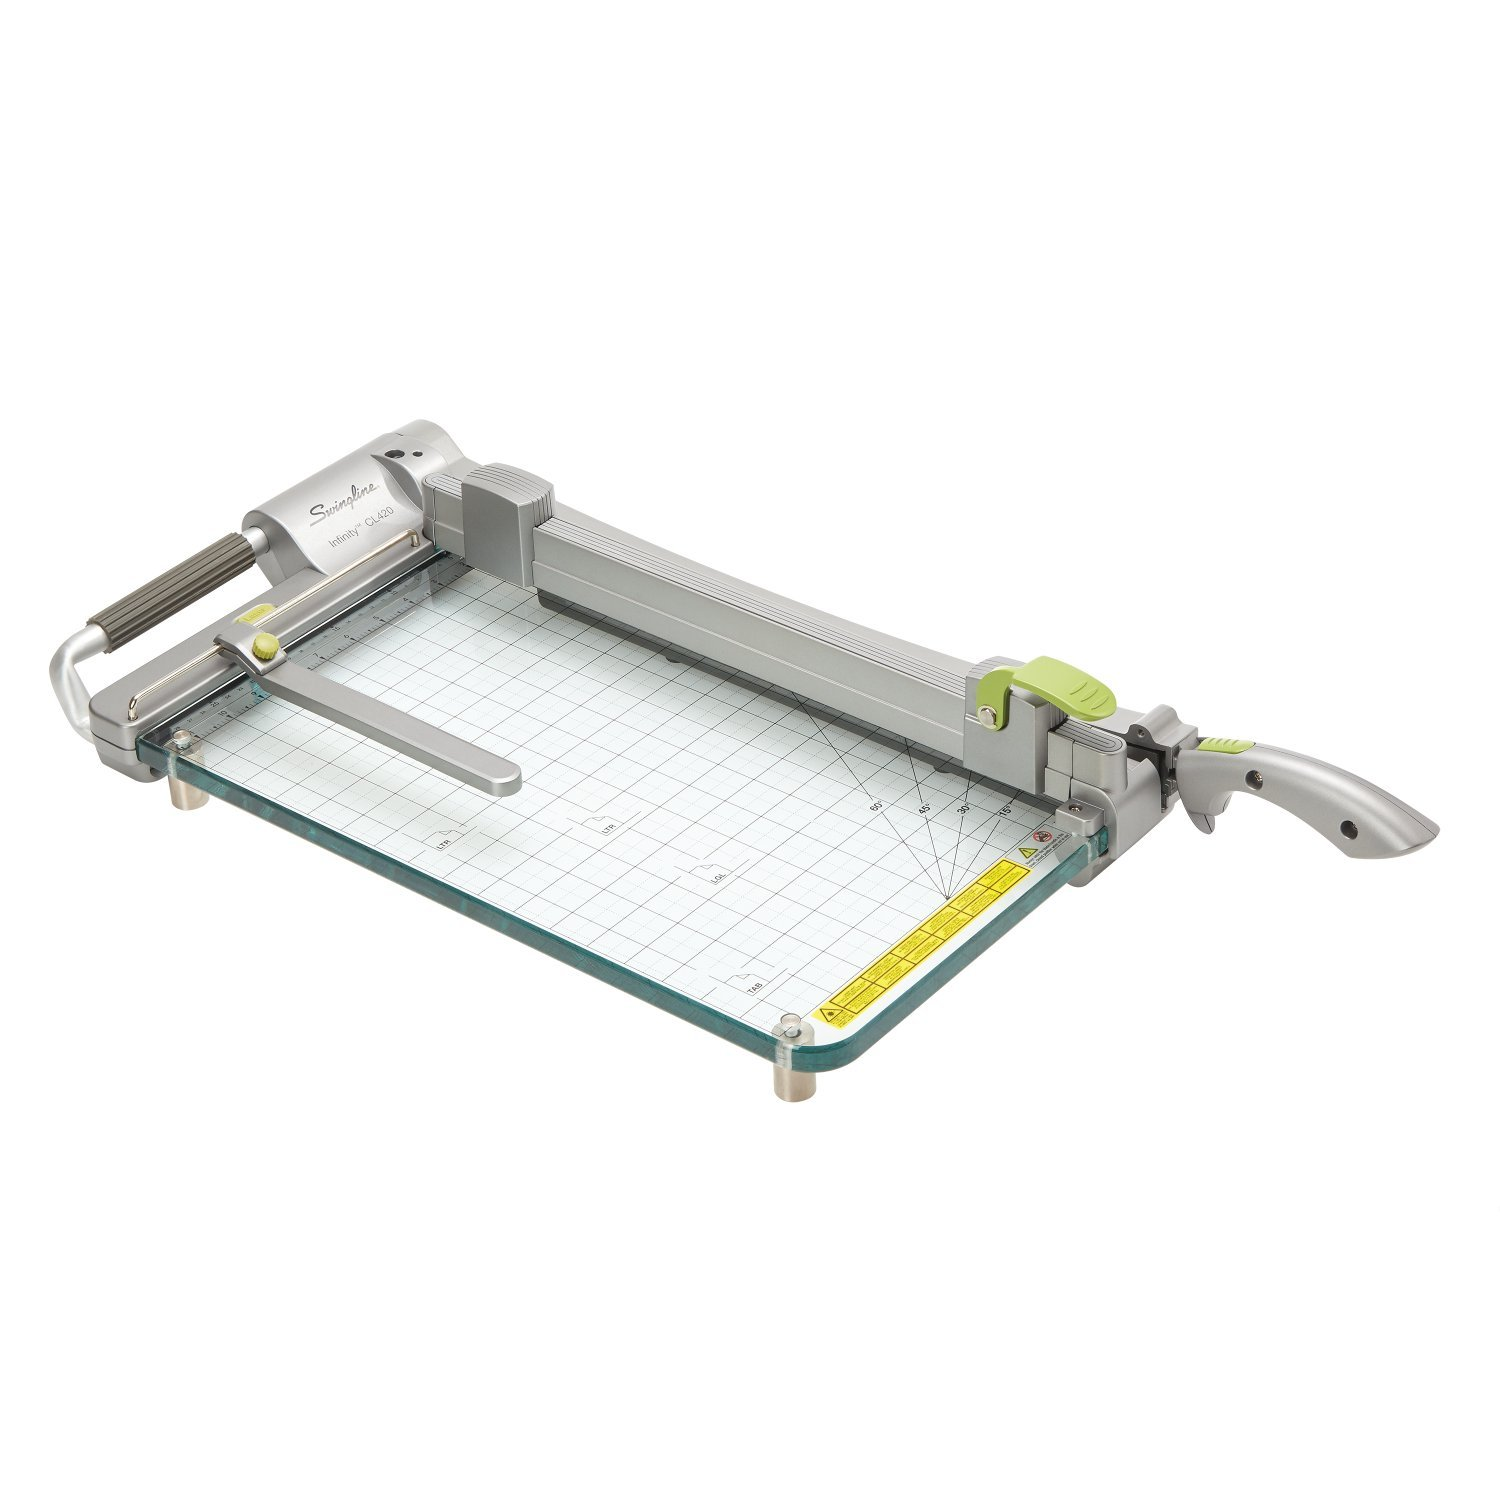 Swingline Paper Trimmer / Cutter, Guillotine, 18'' Cut Length, 25 Sheet Capacity, Infinity ClassicCut CL420 Acrylic (S7099420)